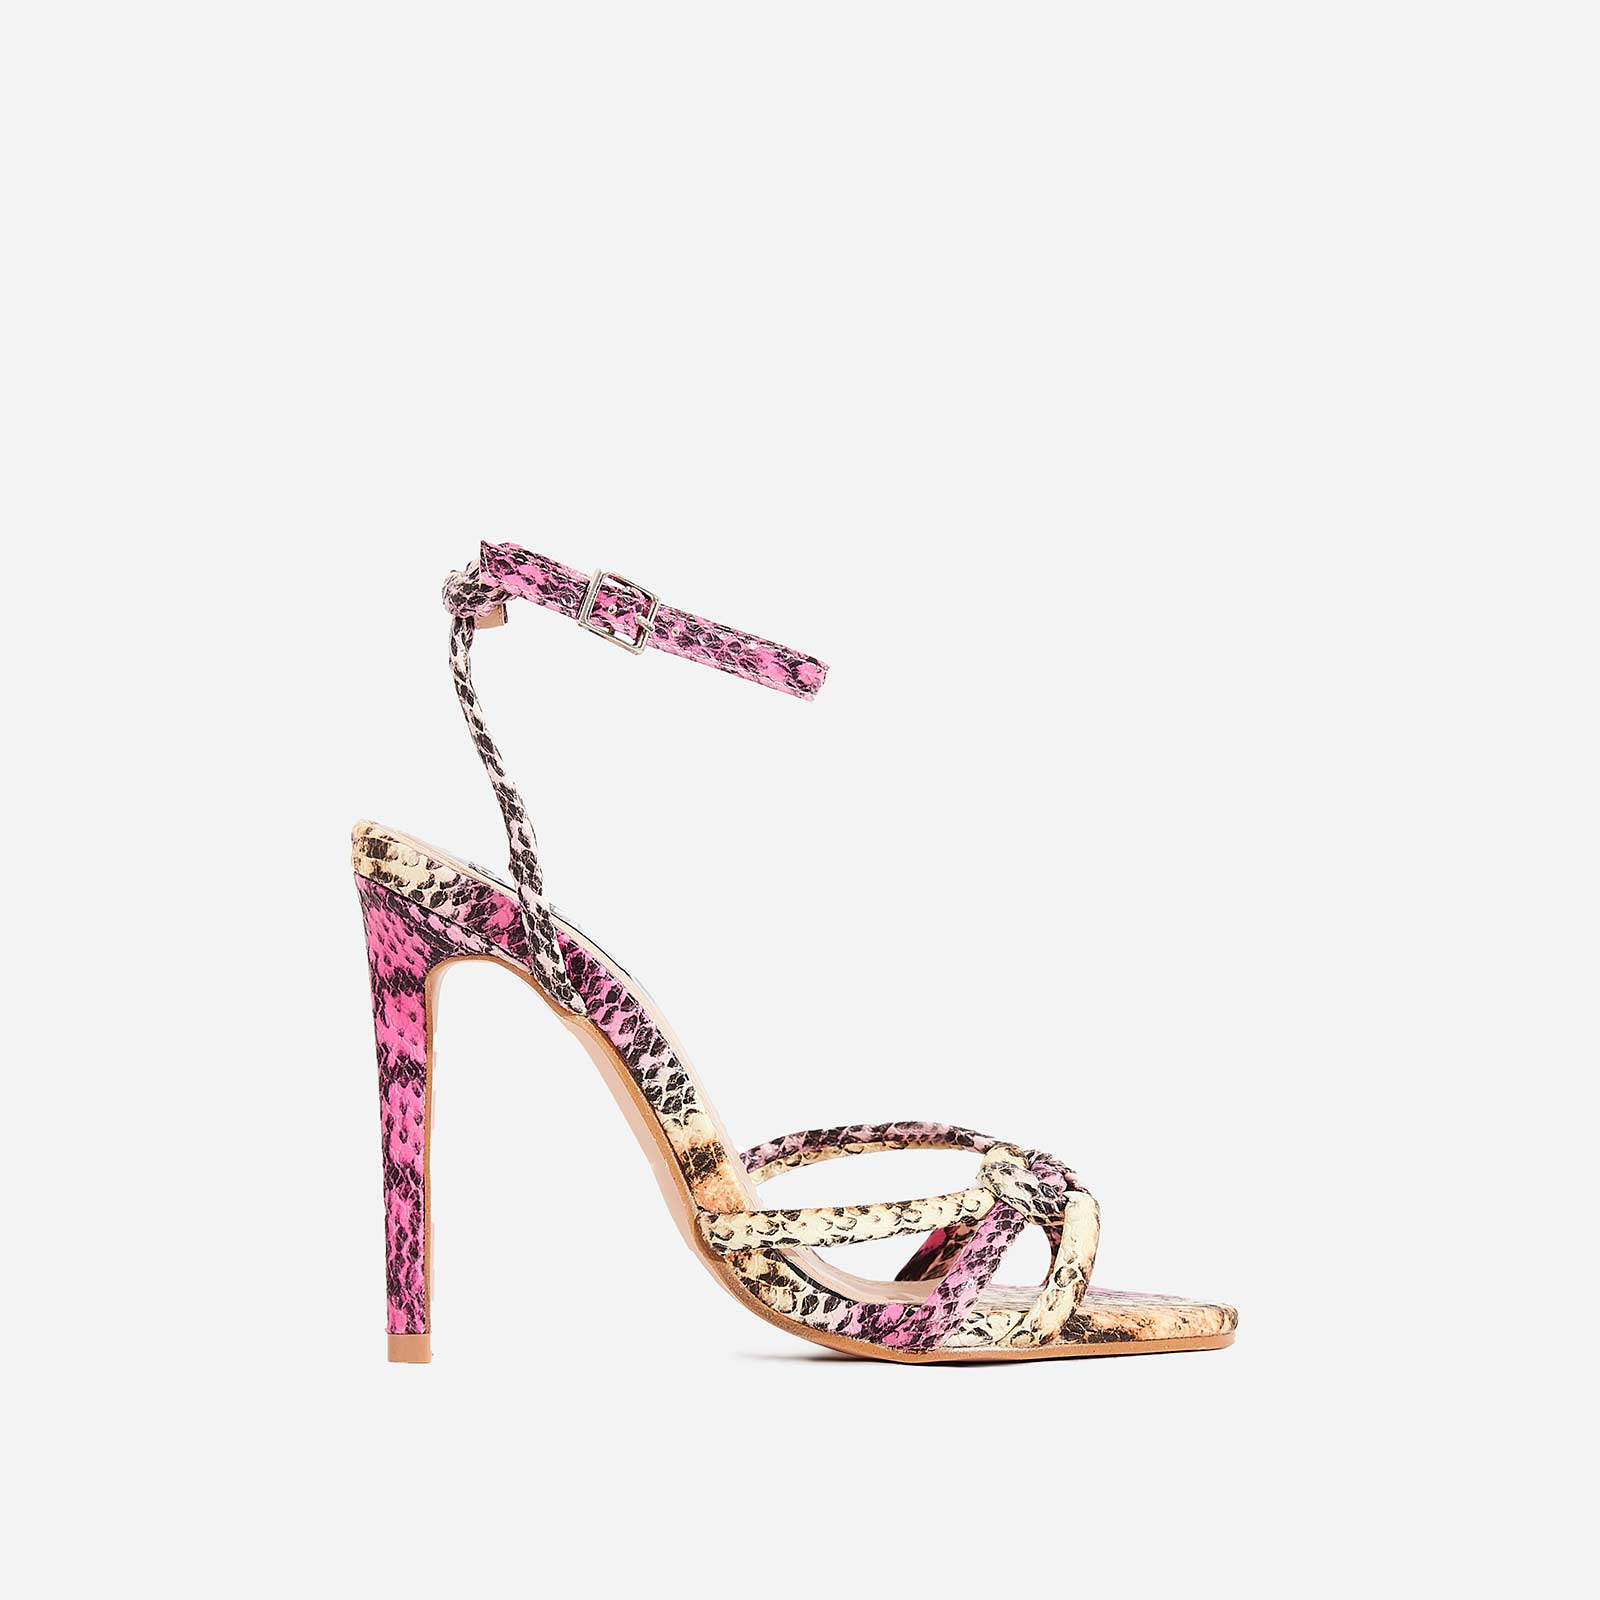 Ravi Knotted Barely There Heel In Pink Snake Print Faux Leather